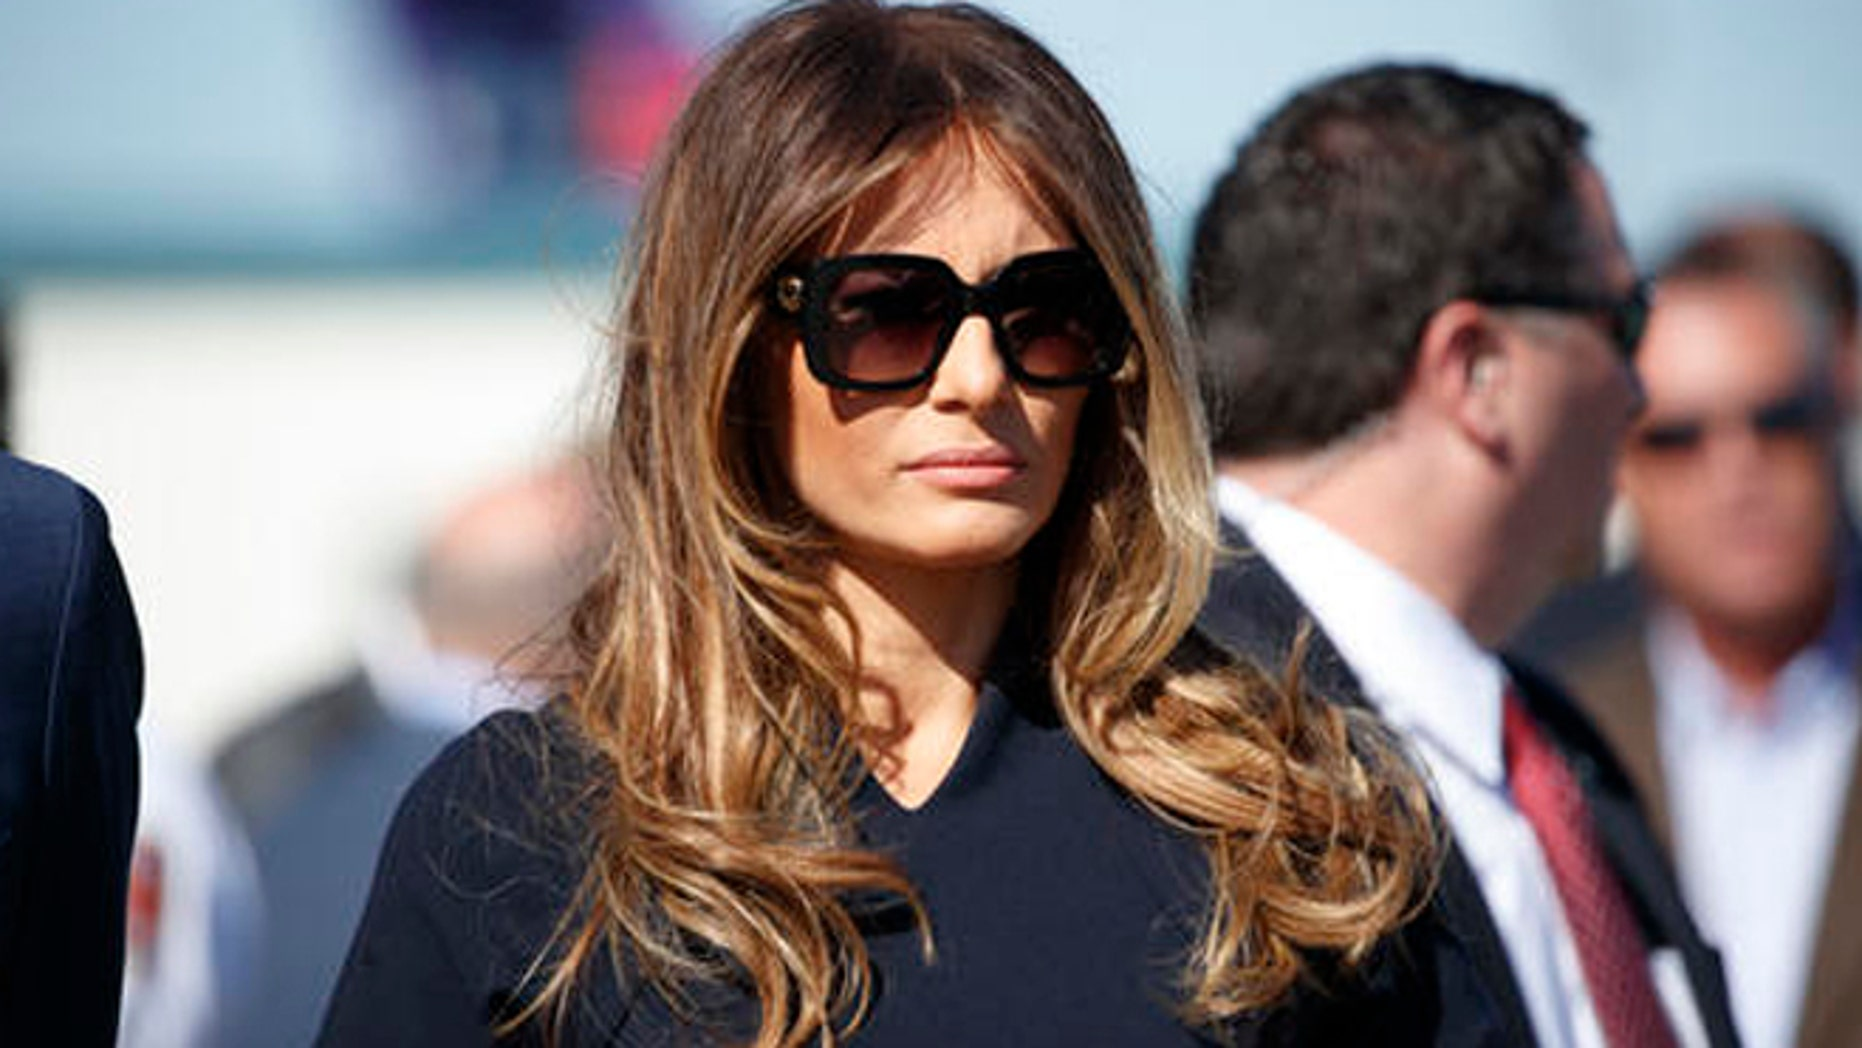 Melania Trump watches her husband, Republican presidential candidate Donald Trump, speak during a campaign rally, Saturday, Nov. 5, 2016, in Wilmington, N.C. (AP Photo/Evan Vucci)